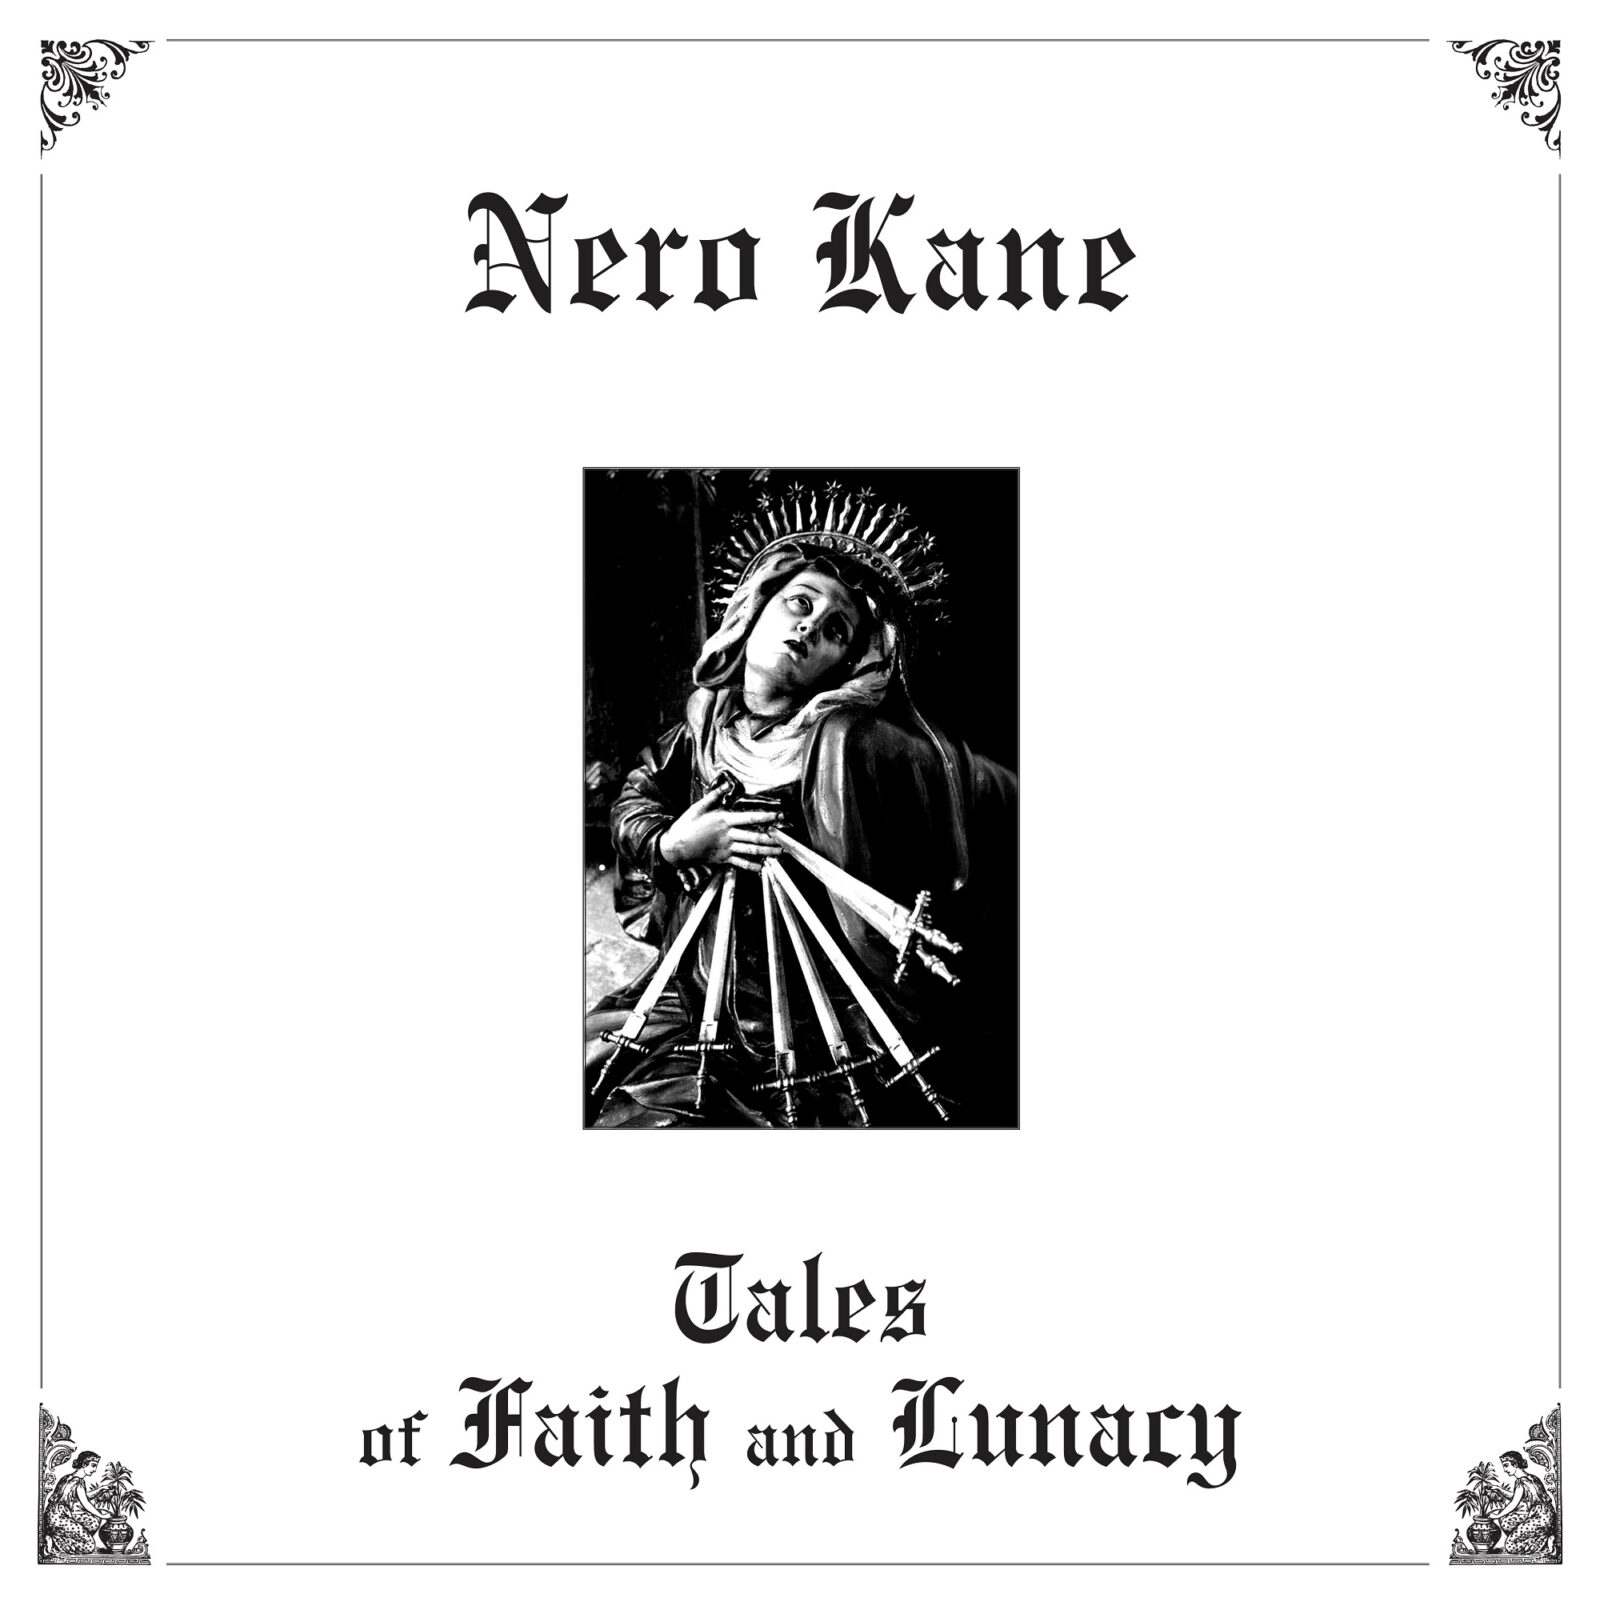 Nero Kane cover LP Tales of Faith and Lunacy